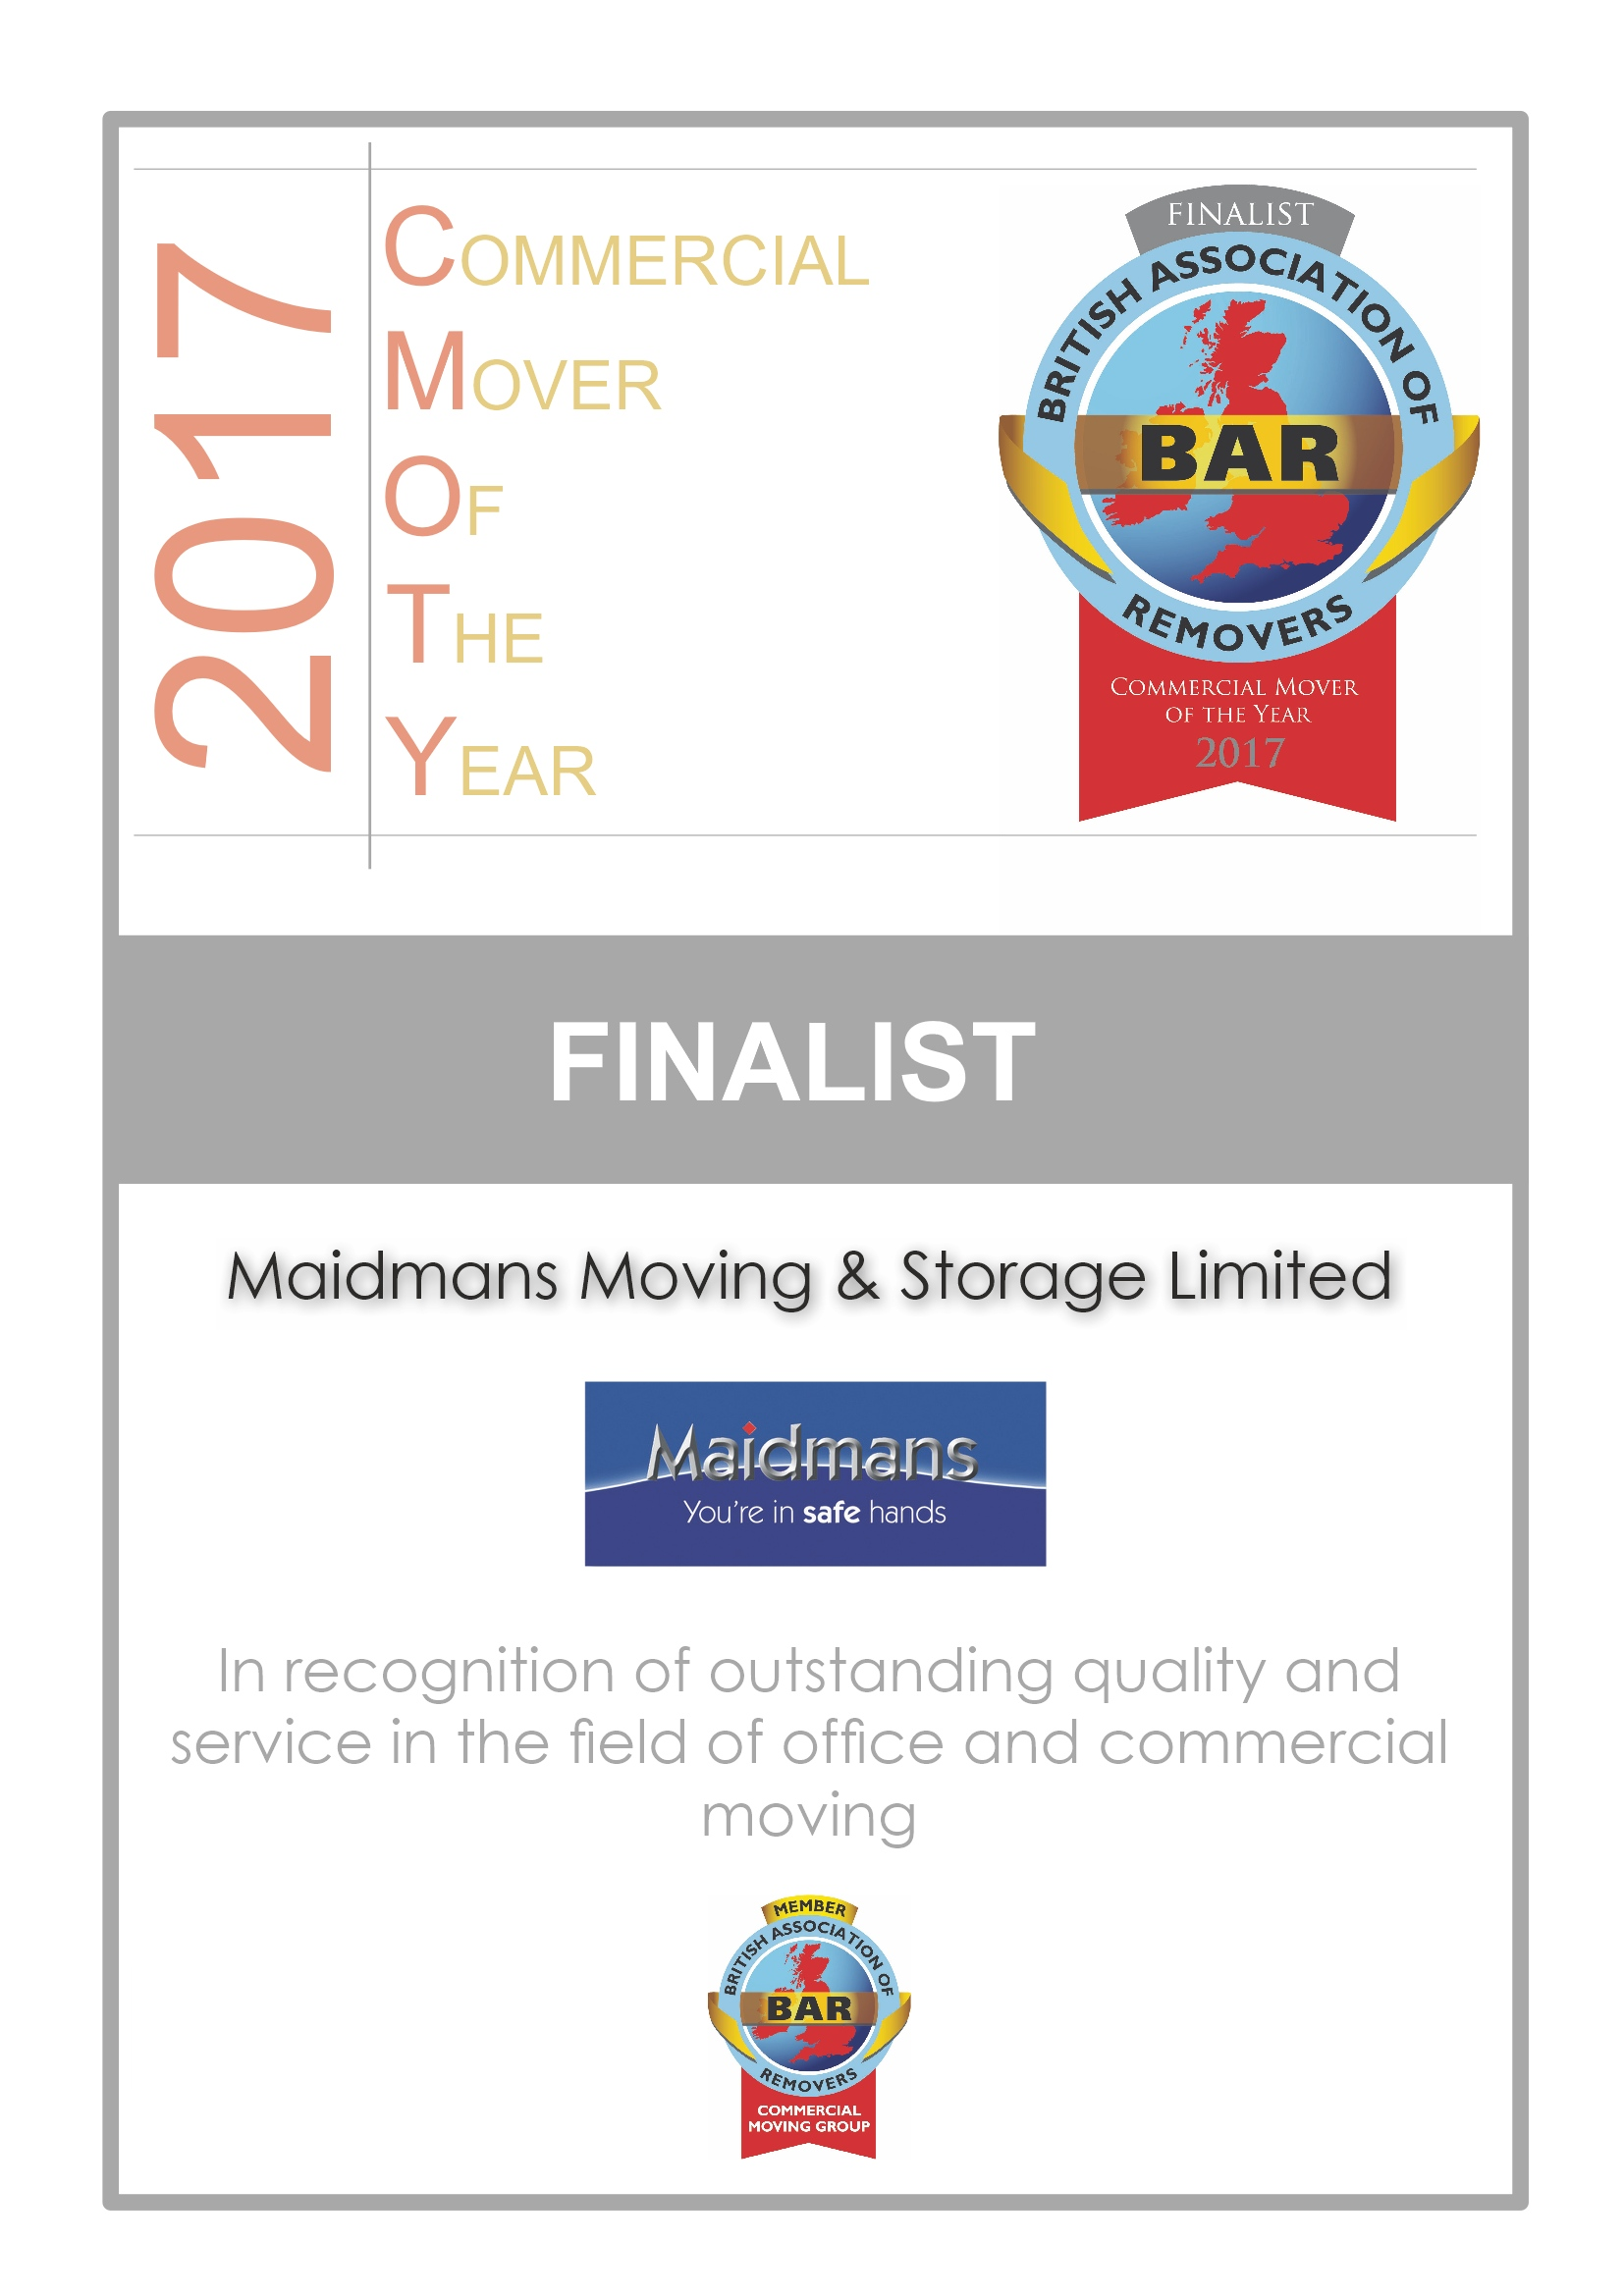 Commercial Mover of the Year 2017 Certificate image